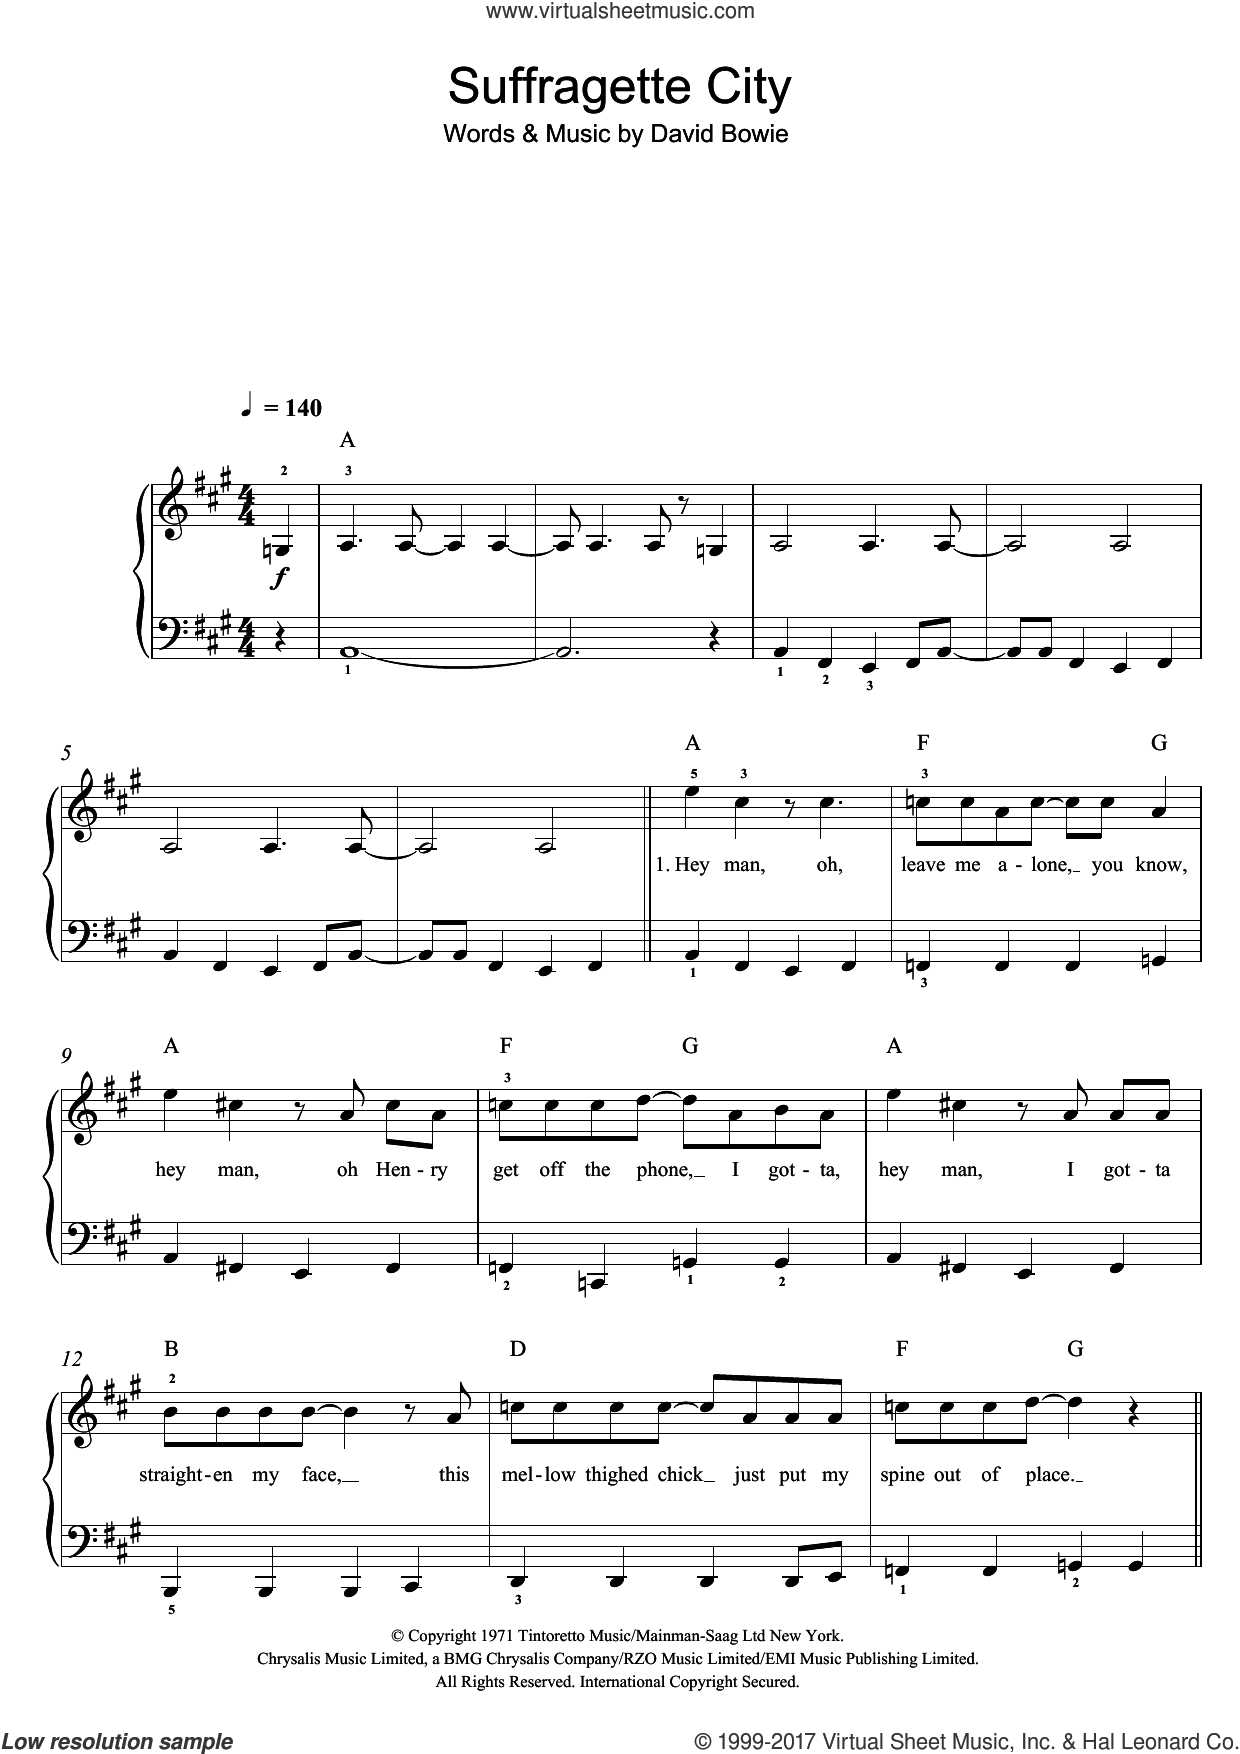 Suffragette City sheet music for voice, piano or guitar by David Bowie, intermediate skill level